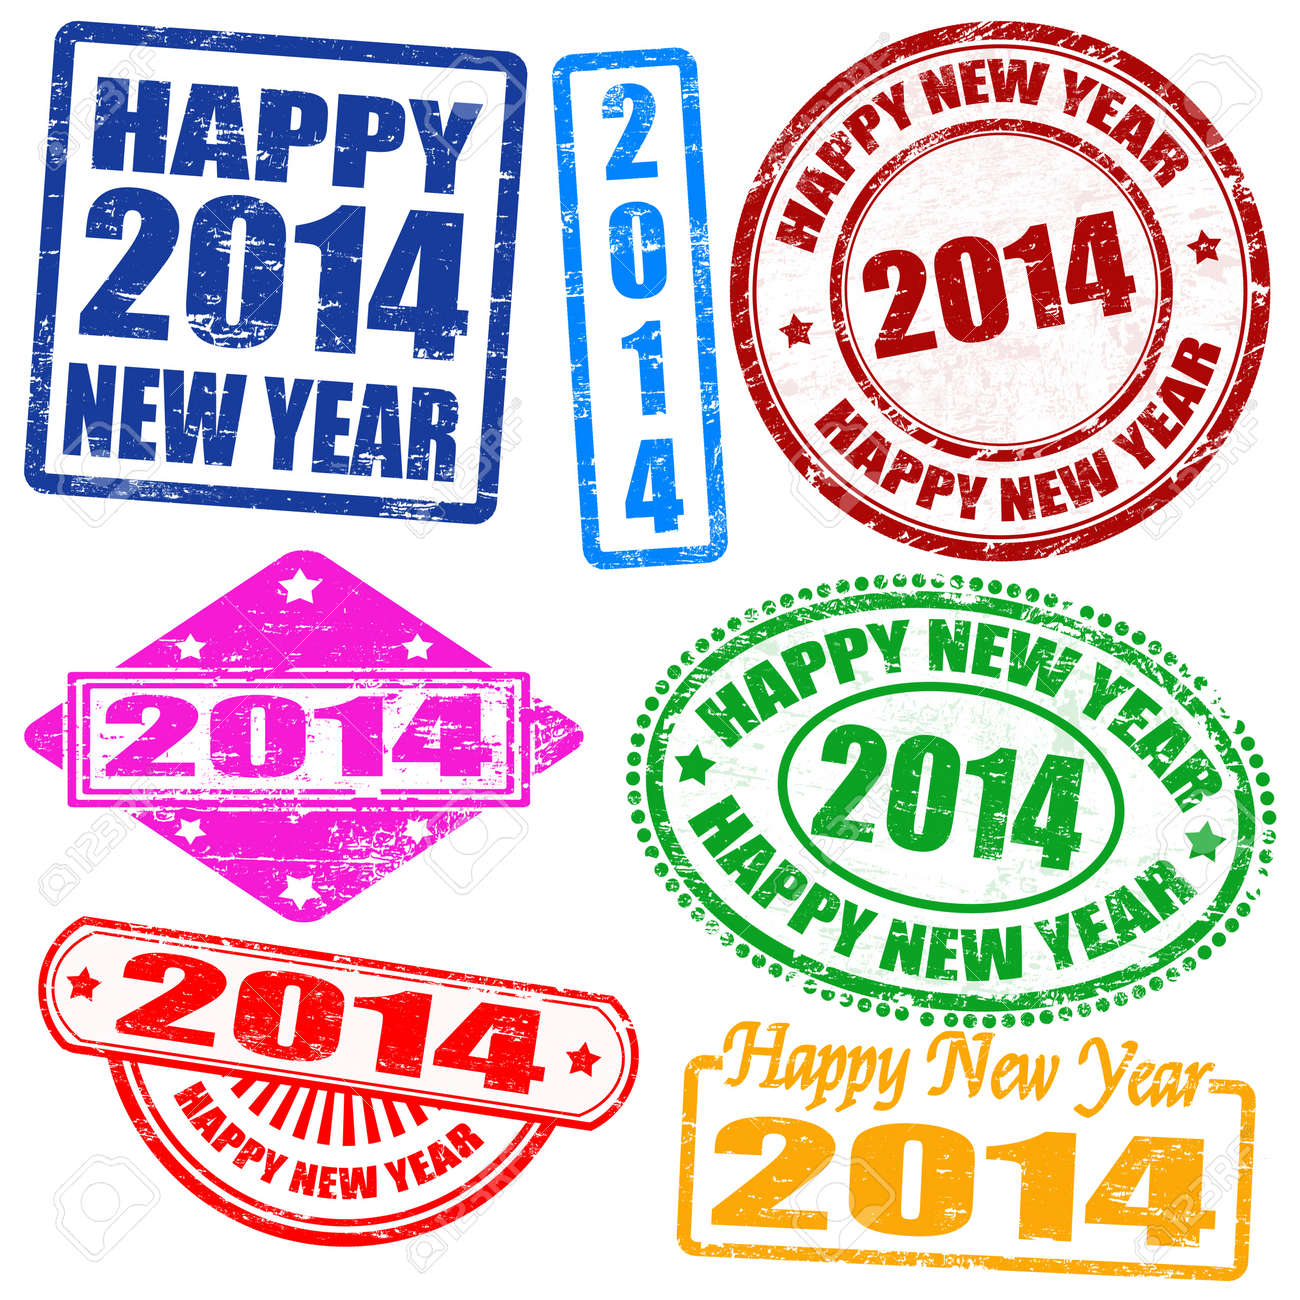 Set of 2014 new year grunge stamps, vector illustration Stock Vector - 19026249